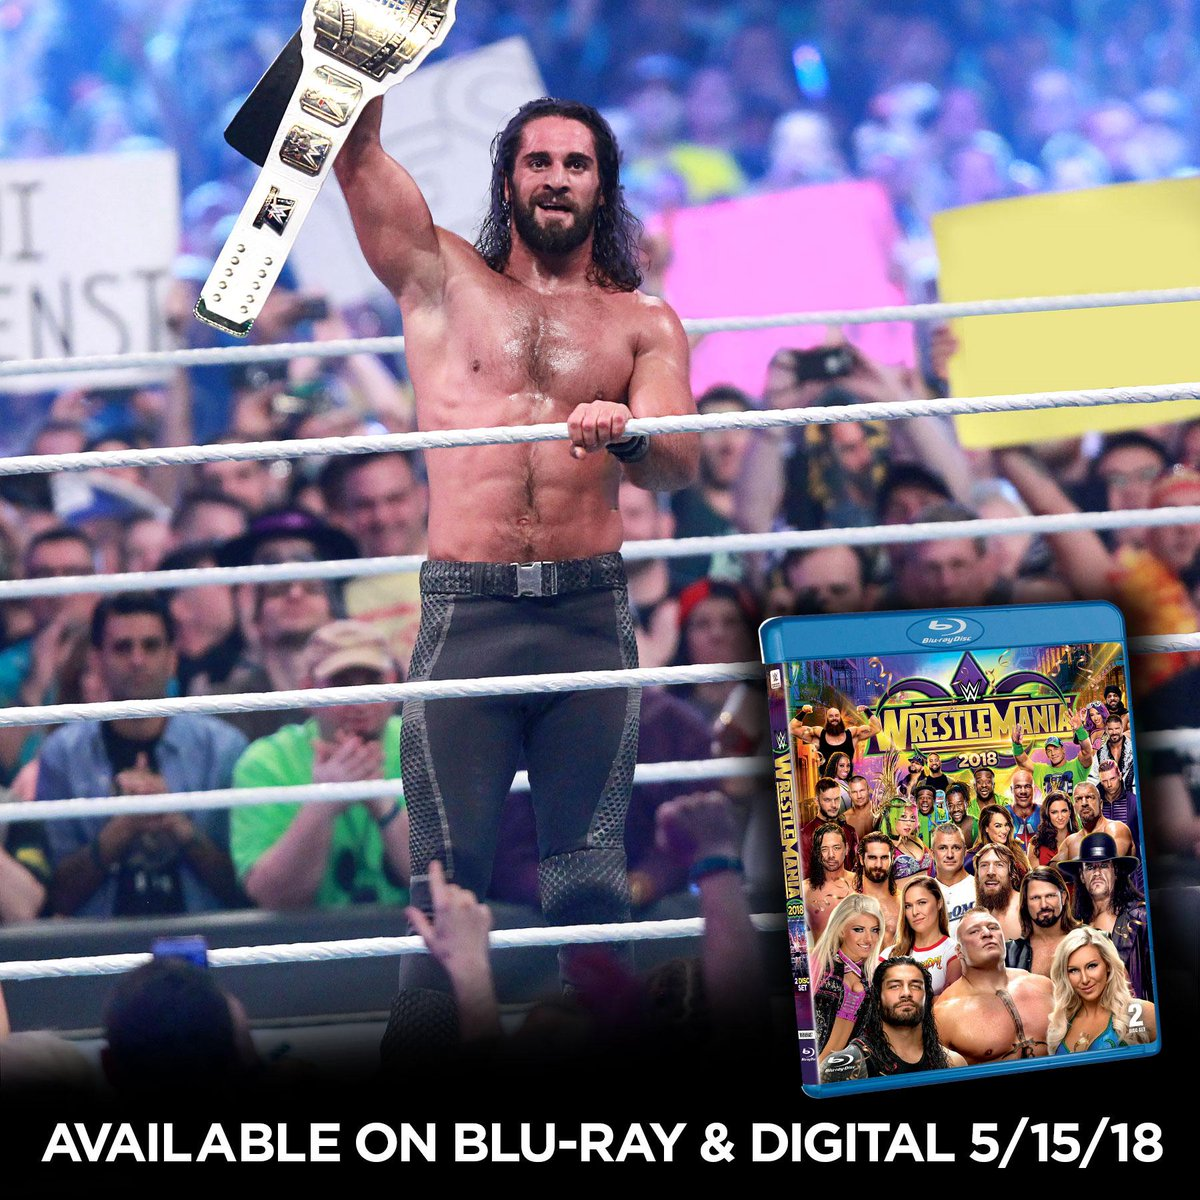 The night #GrandSlamRollins became a reality. #WrestleMania 34 is available now on Blu-ray at @BestBuy! @WWERollins